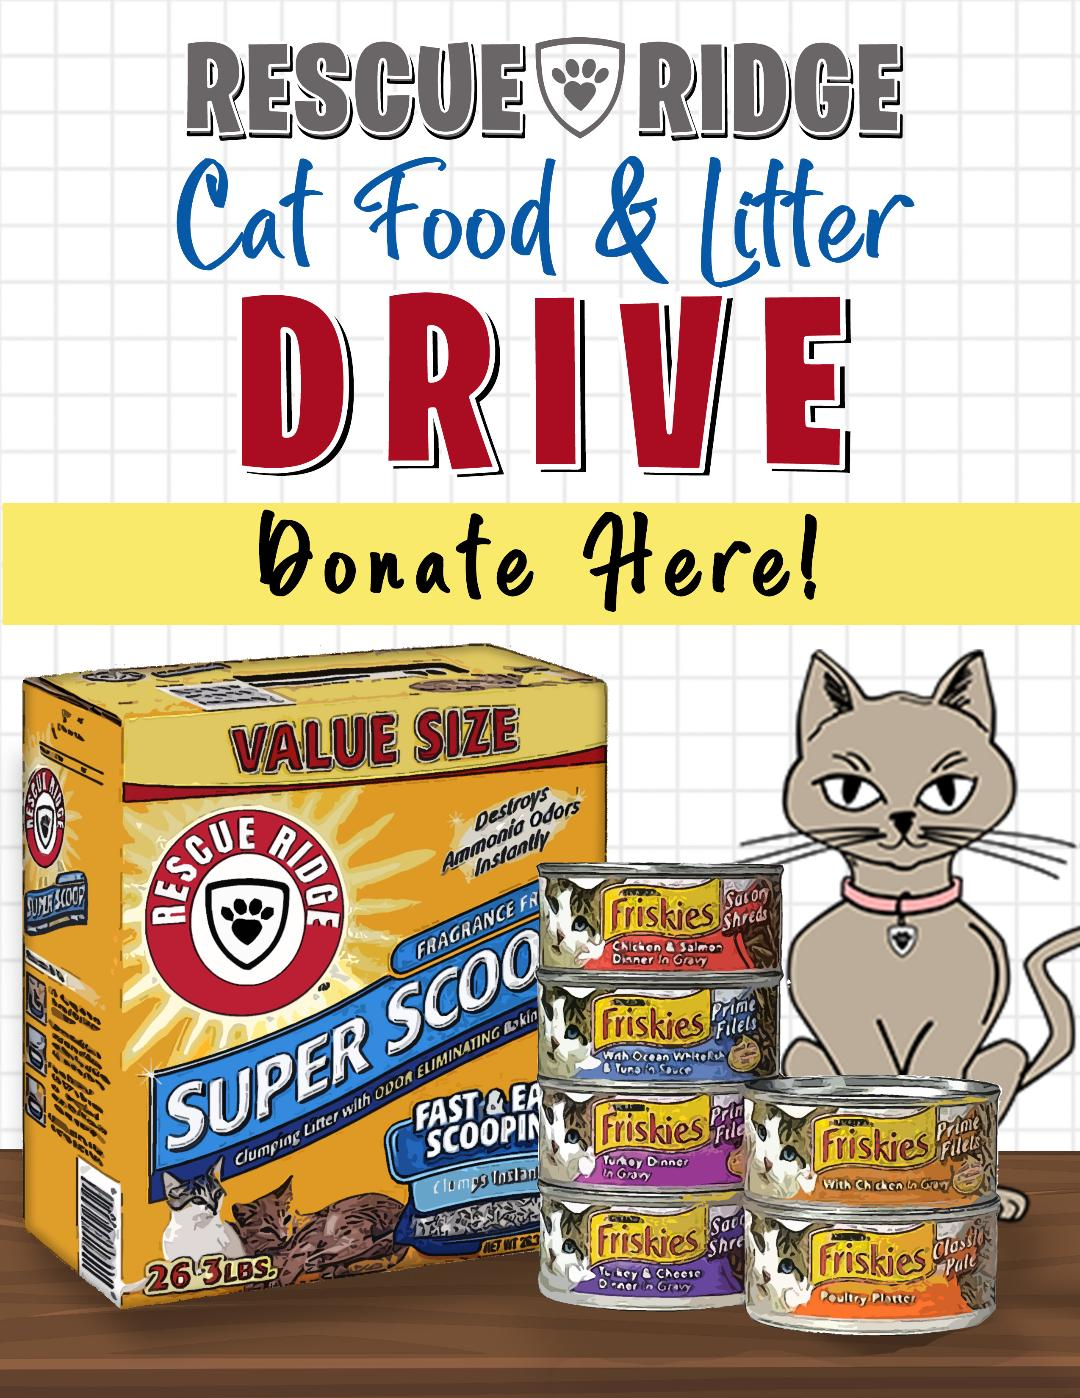 cat-food-and-litter-drive-for-pet-supplies-plus-dec-9-2020.jpg